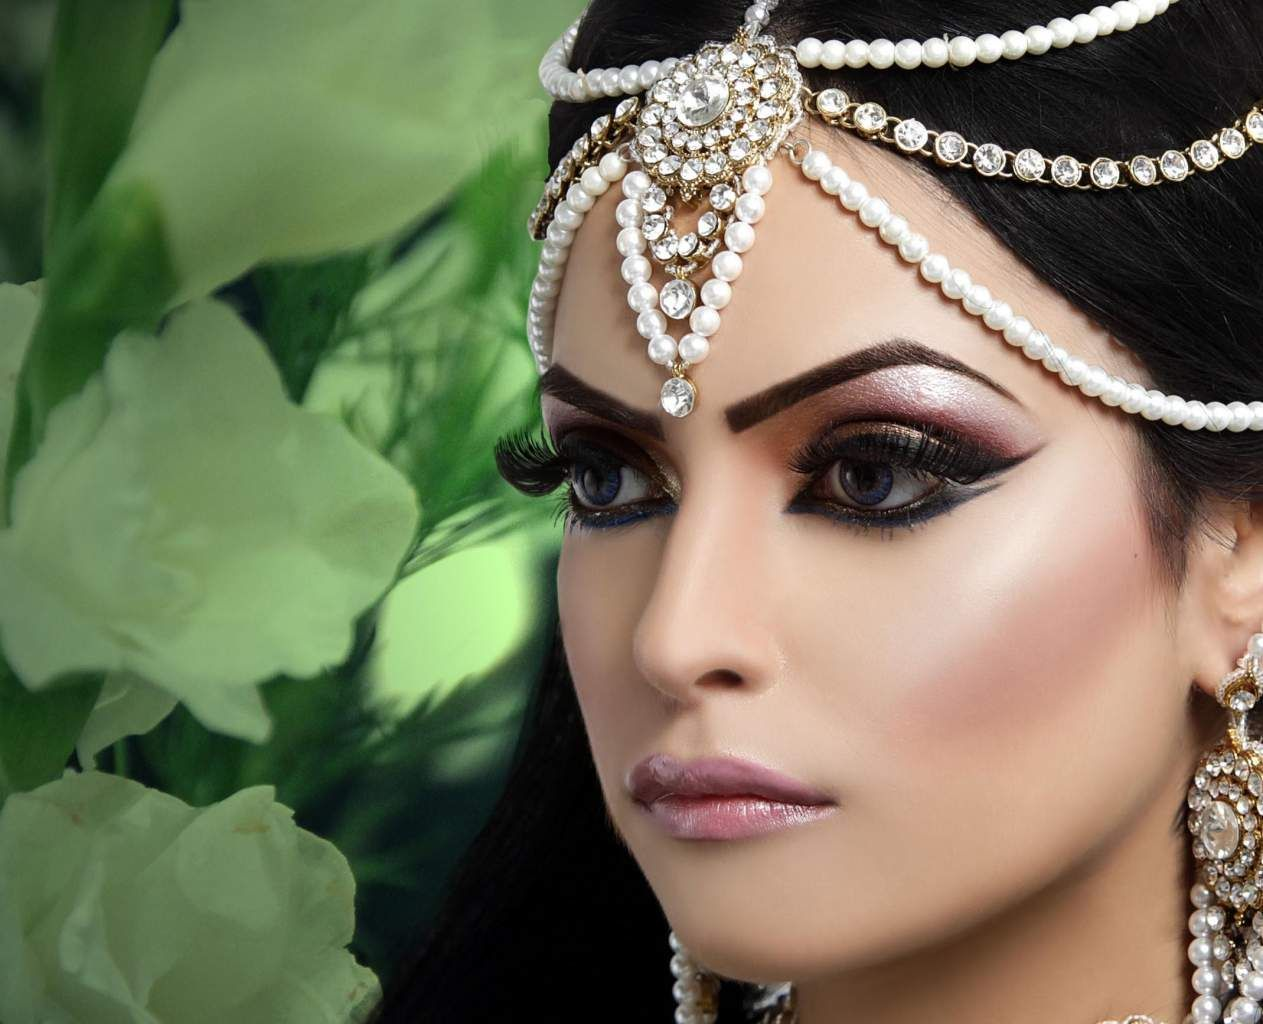 Sukhi sanghera1g obrazek jpeg 12631024 pikseli bridal arabic bridal party wear makeup tutorial trends contains middle east egyptian turkish eye complete face makeup ideas stunning looks baditri Choice Image